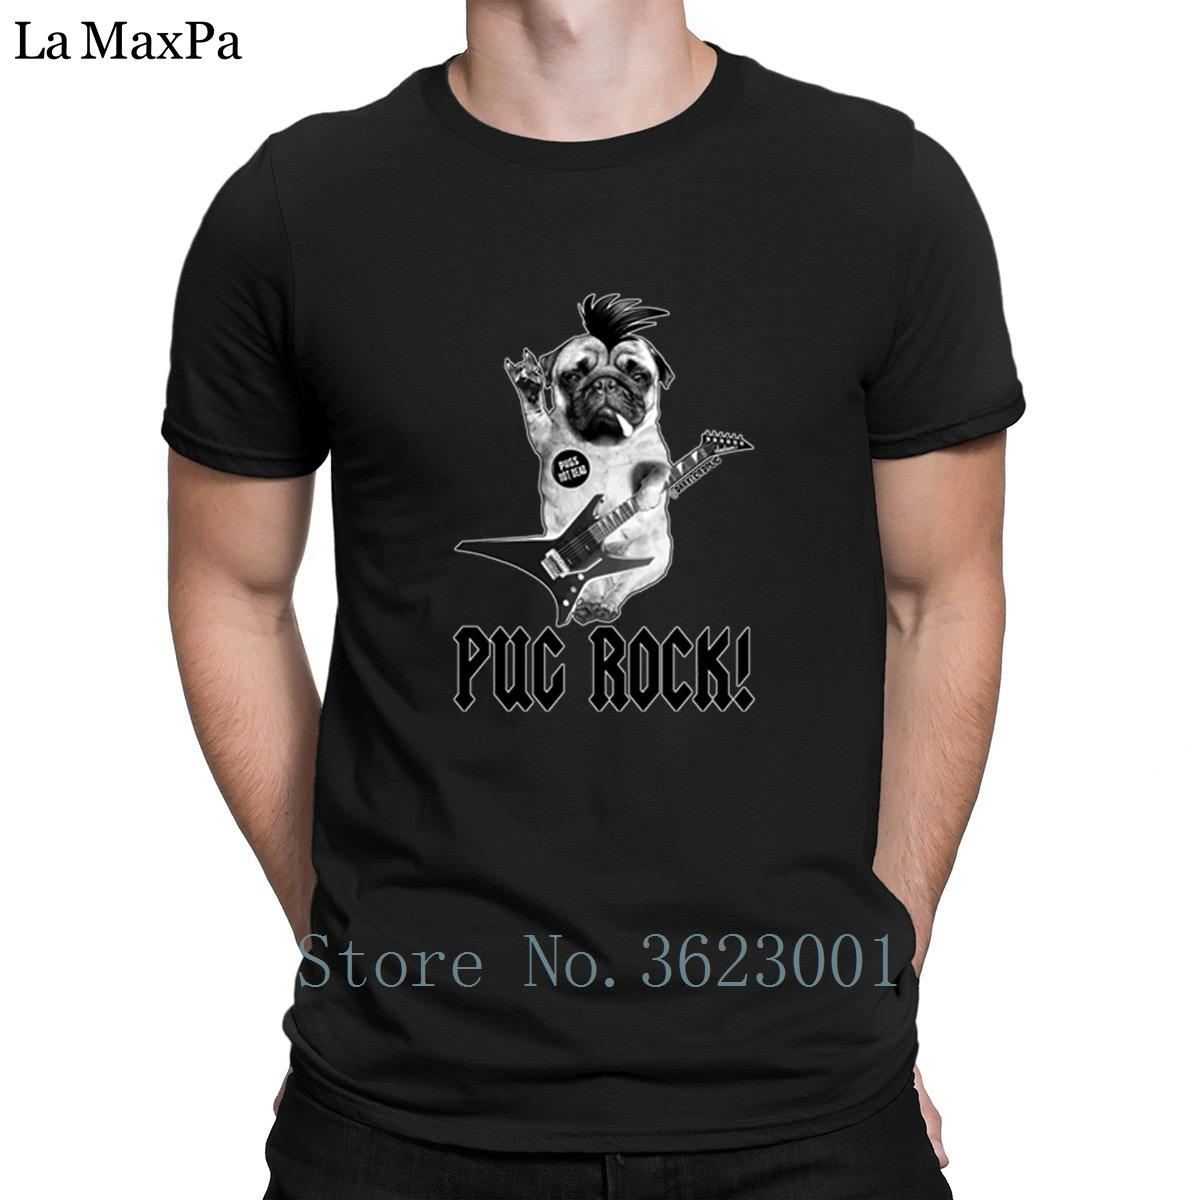 81ab4df331d Printing Kawaii Men S Tshirt Pug Rock Mens Tee Shirt Nice Awesome Men T  Shirt Tee Top Men S T Shirt Cotton Simple Basic Solid T Shirt Buy Cool T  Shirt ...